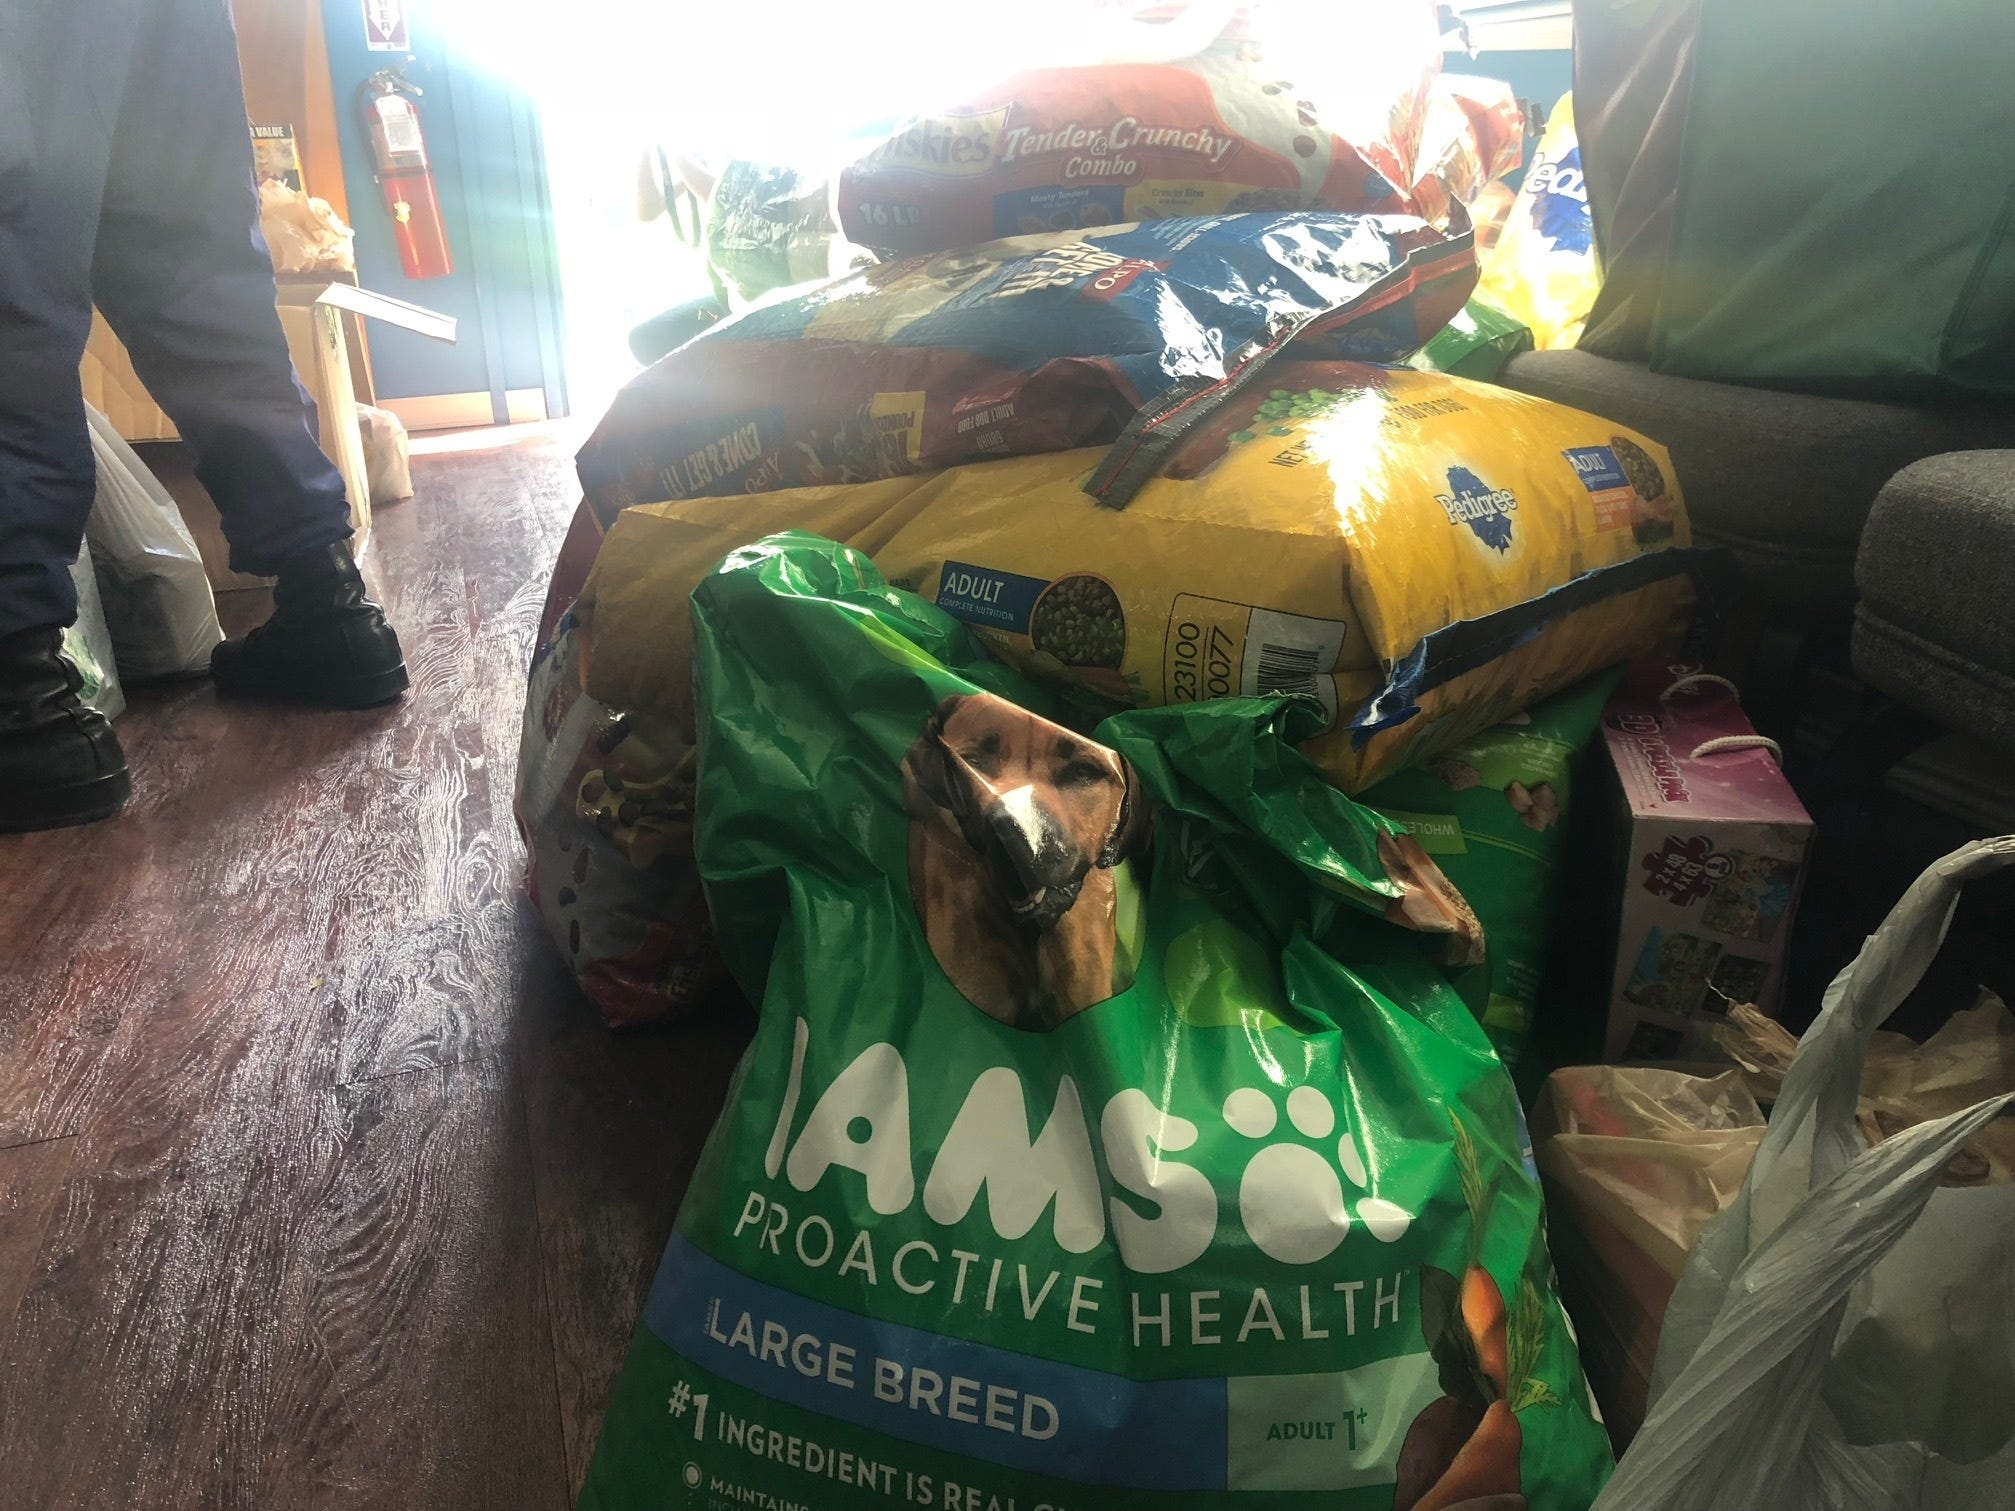 Bags of dog food wait to be loaded and taken to Saipan in response to Typhoon Yutu, Oct. 26, 2018. Members of the community on Guam donated many different supplies to be sent for relief efforts of those effected on Saipan.